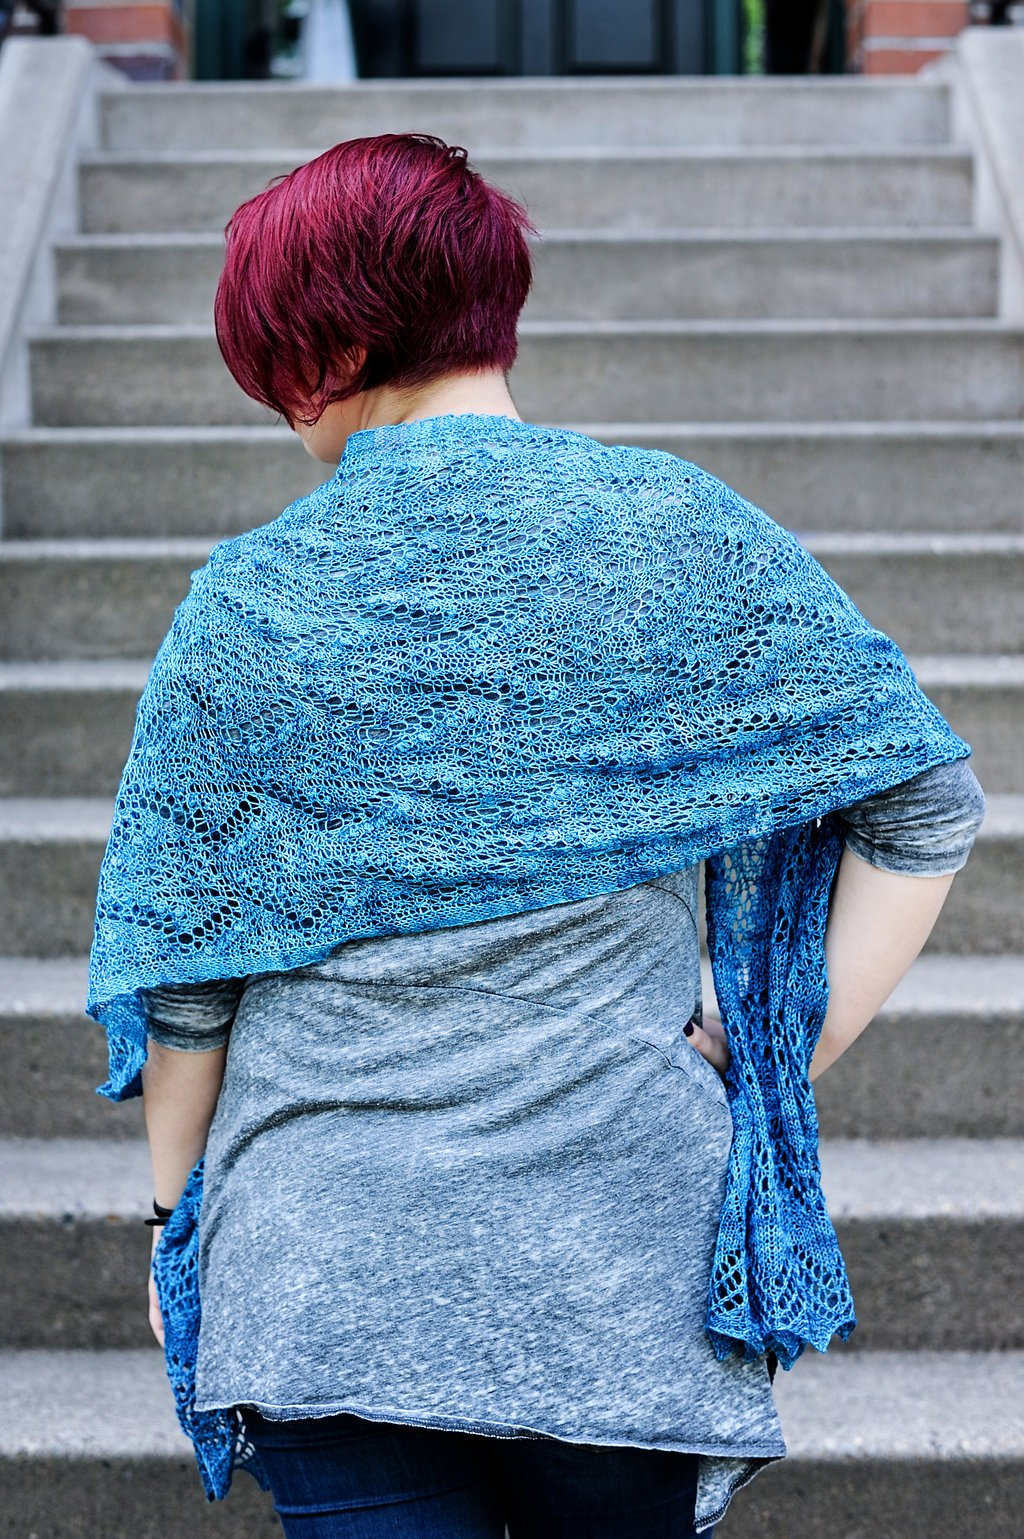 Camas Flower Shawl Kit